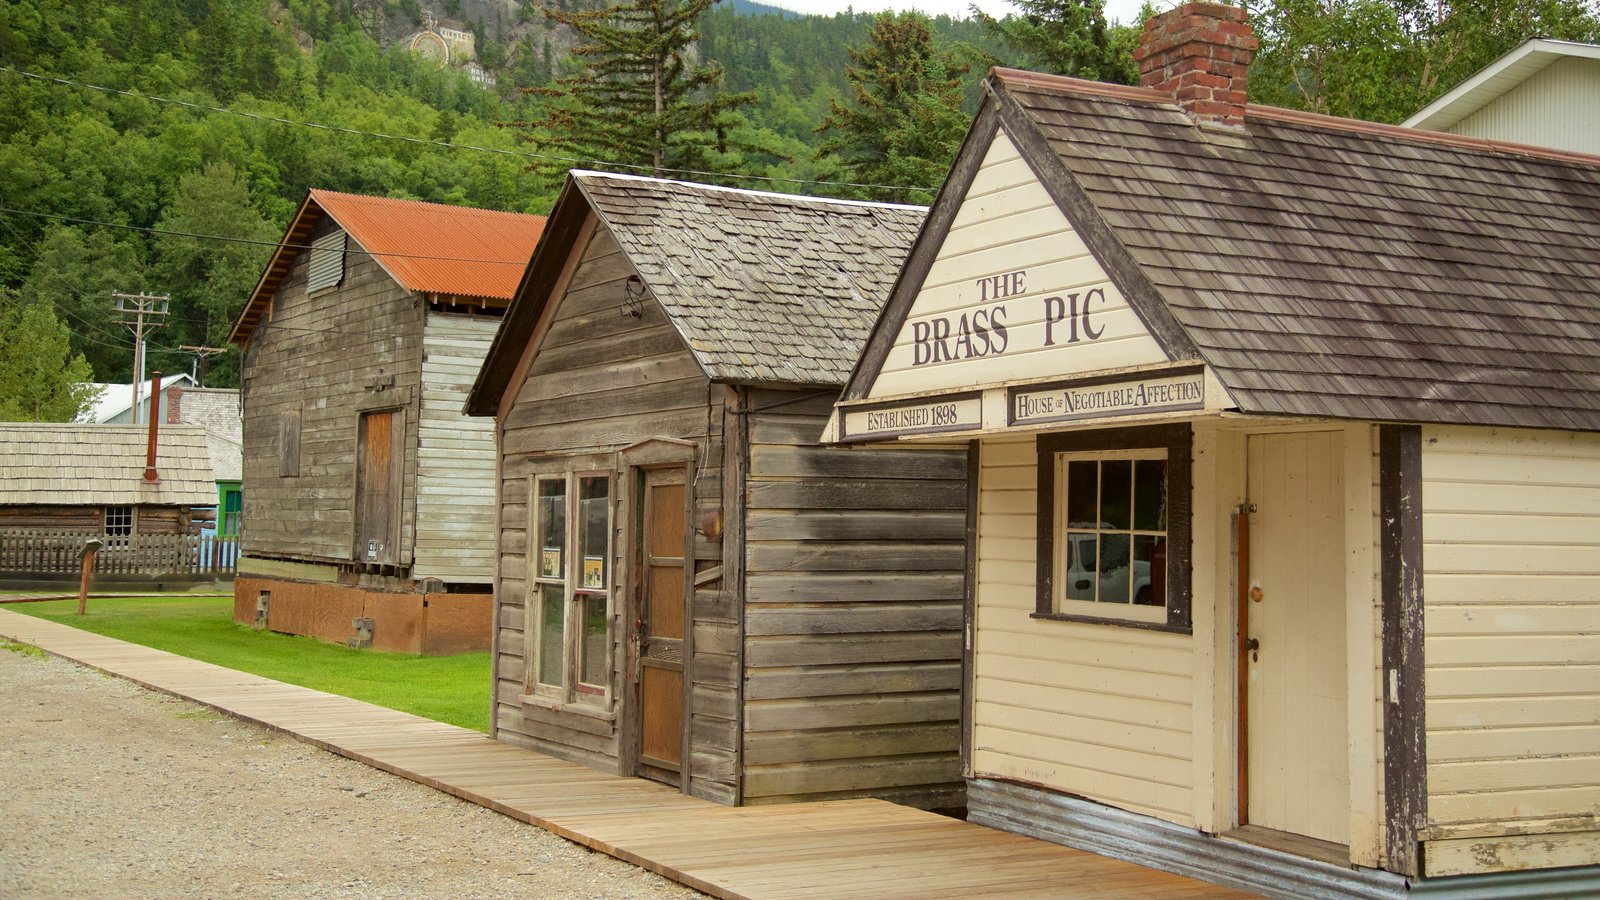 Klondike Gold Rush National Historic Park Showing Heritage Architecture And  A Small Town Or Village